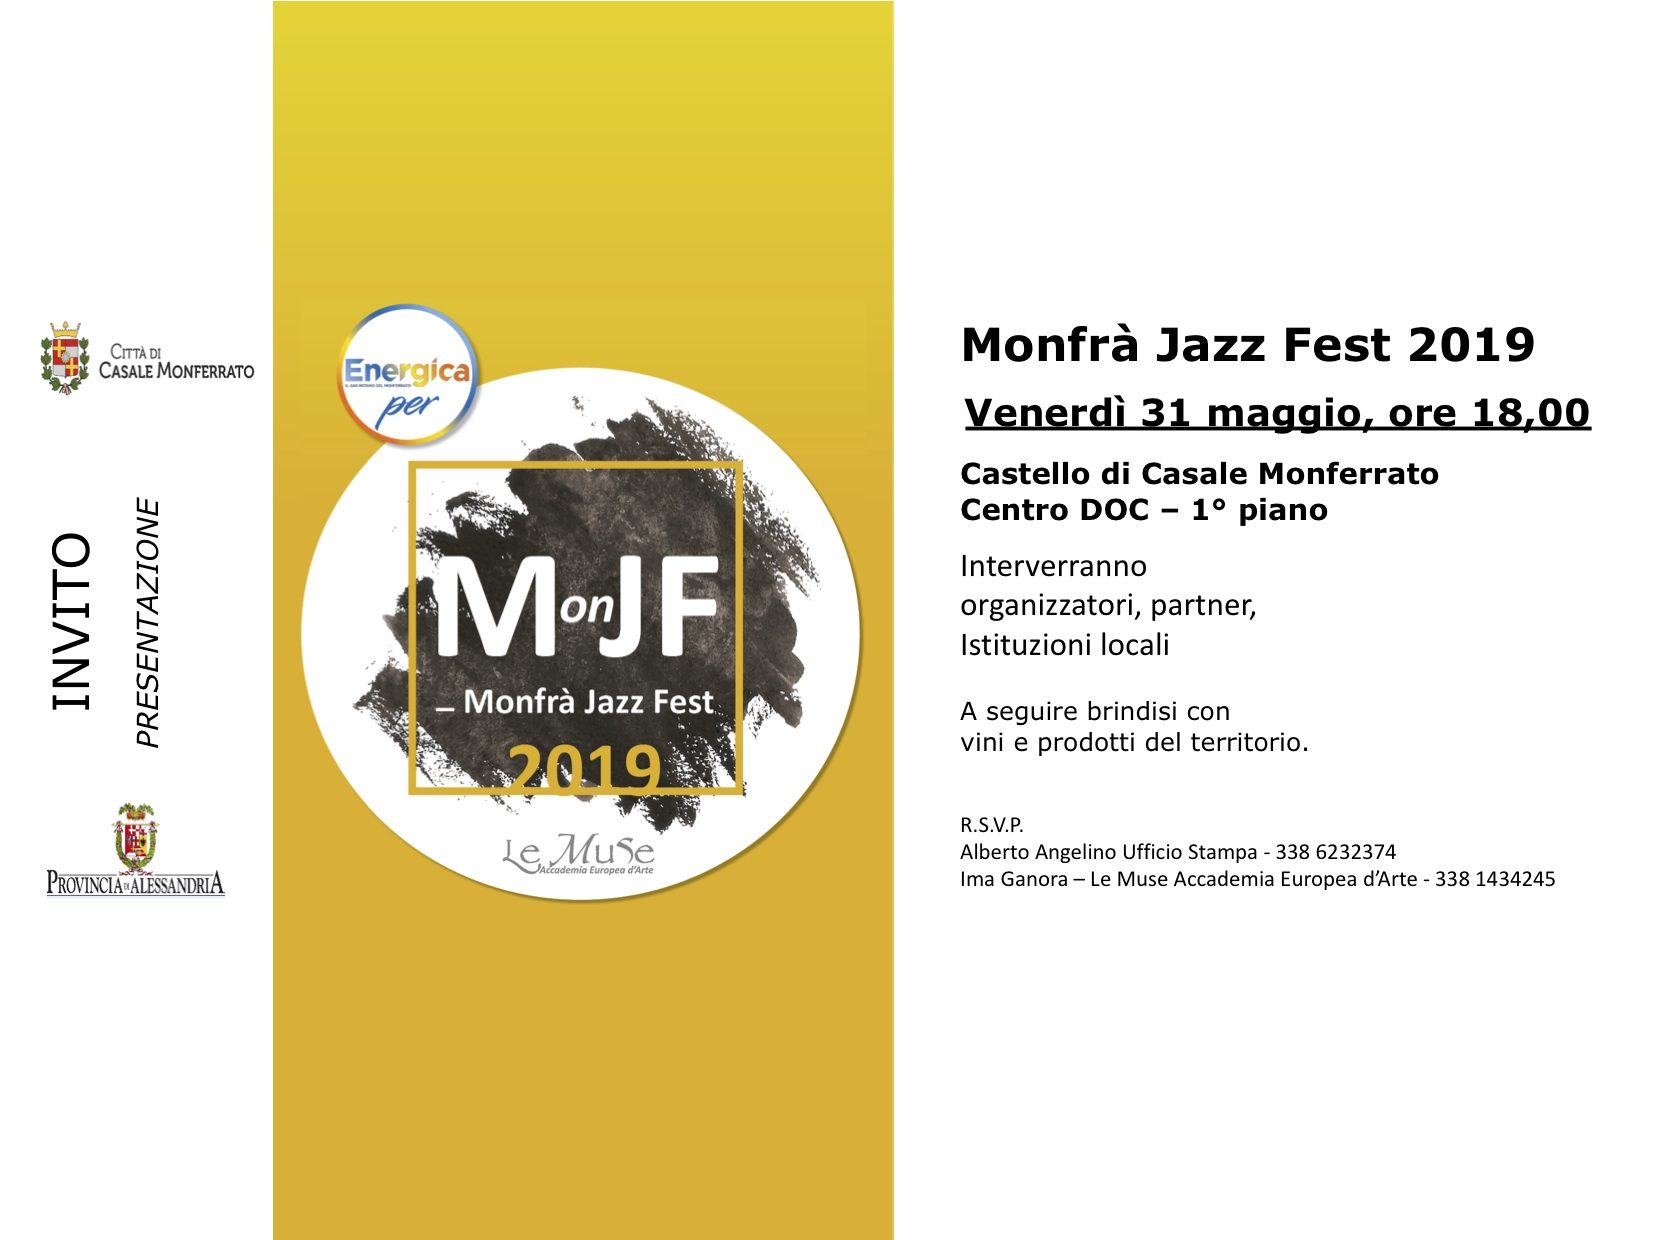 aaa monfra MonJF2019 PDF